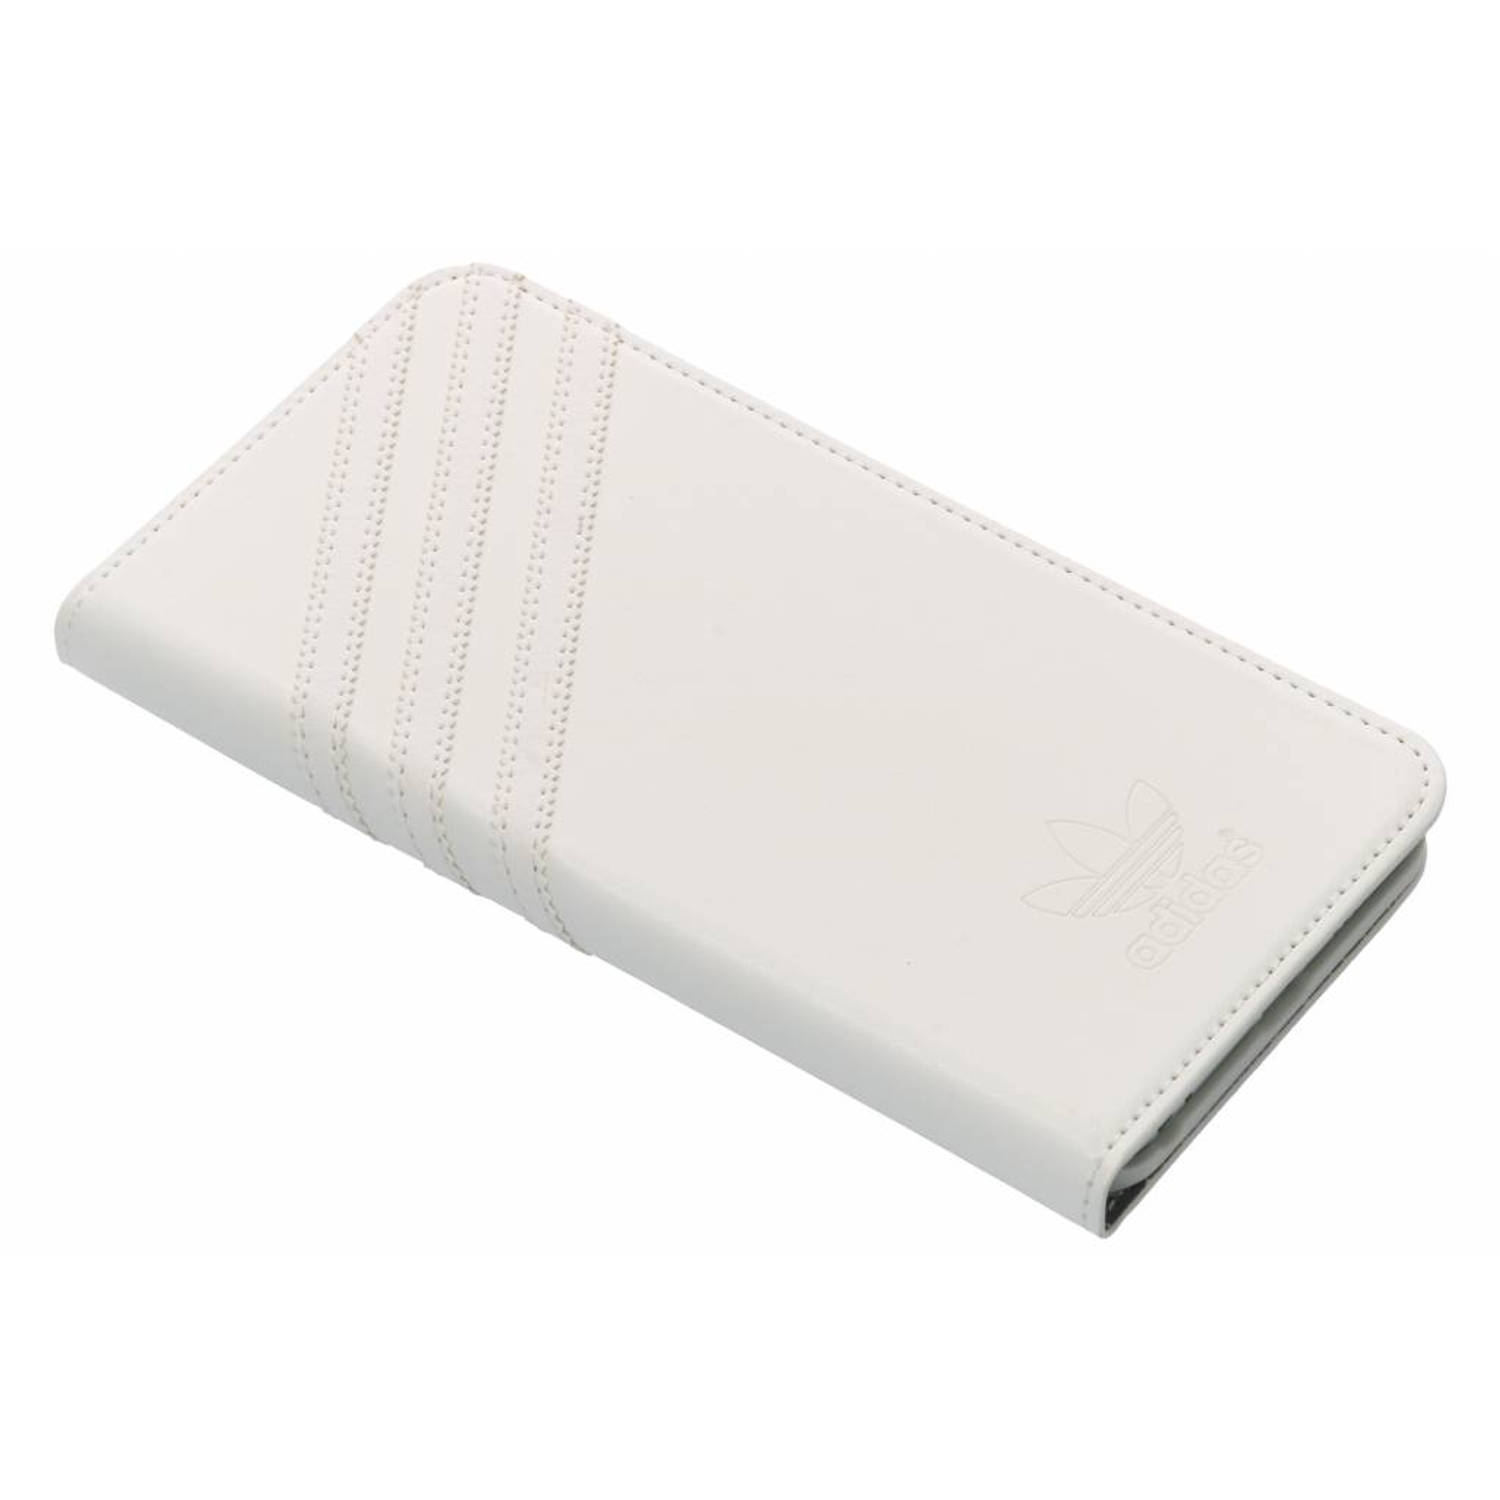 Witte Basics Booklet Case voor de iPhone 6(s) Plus